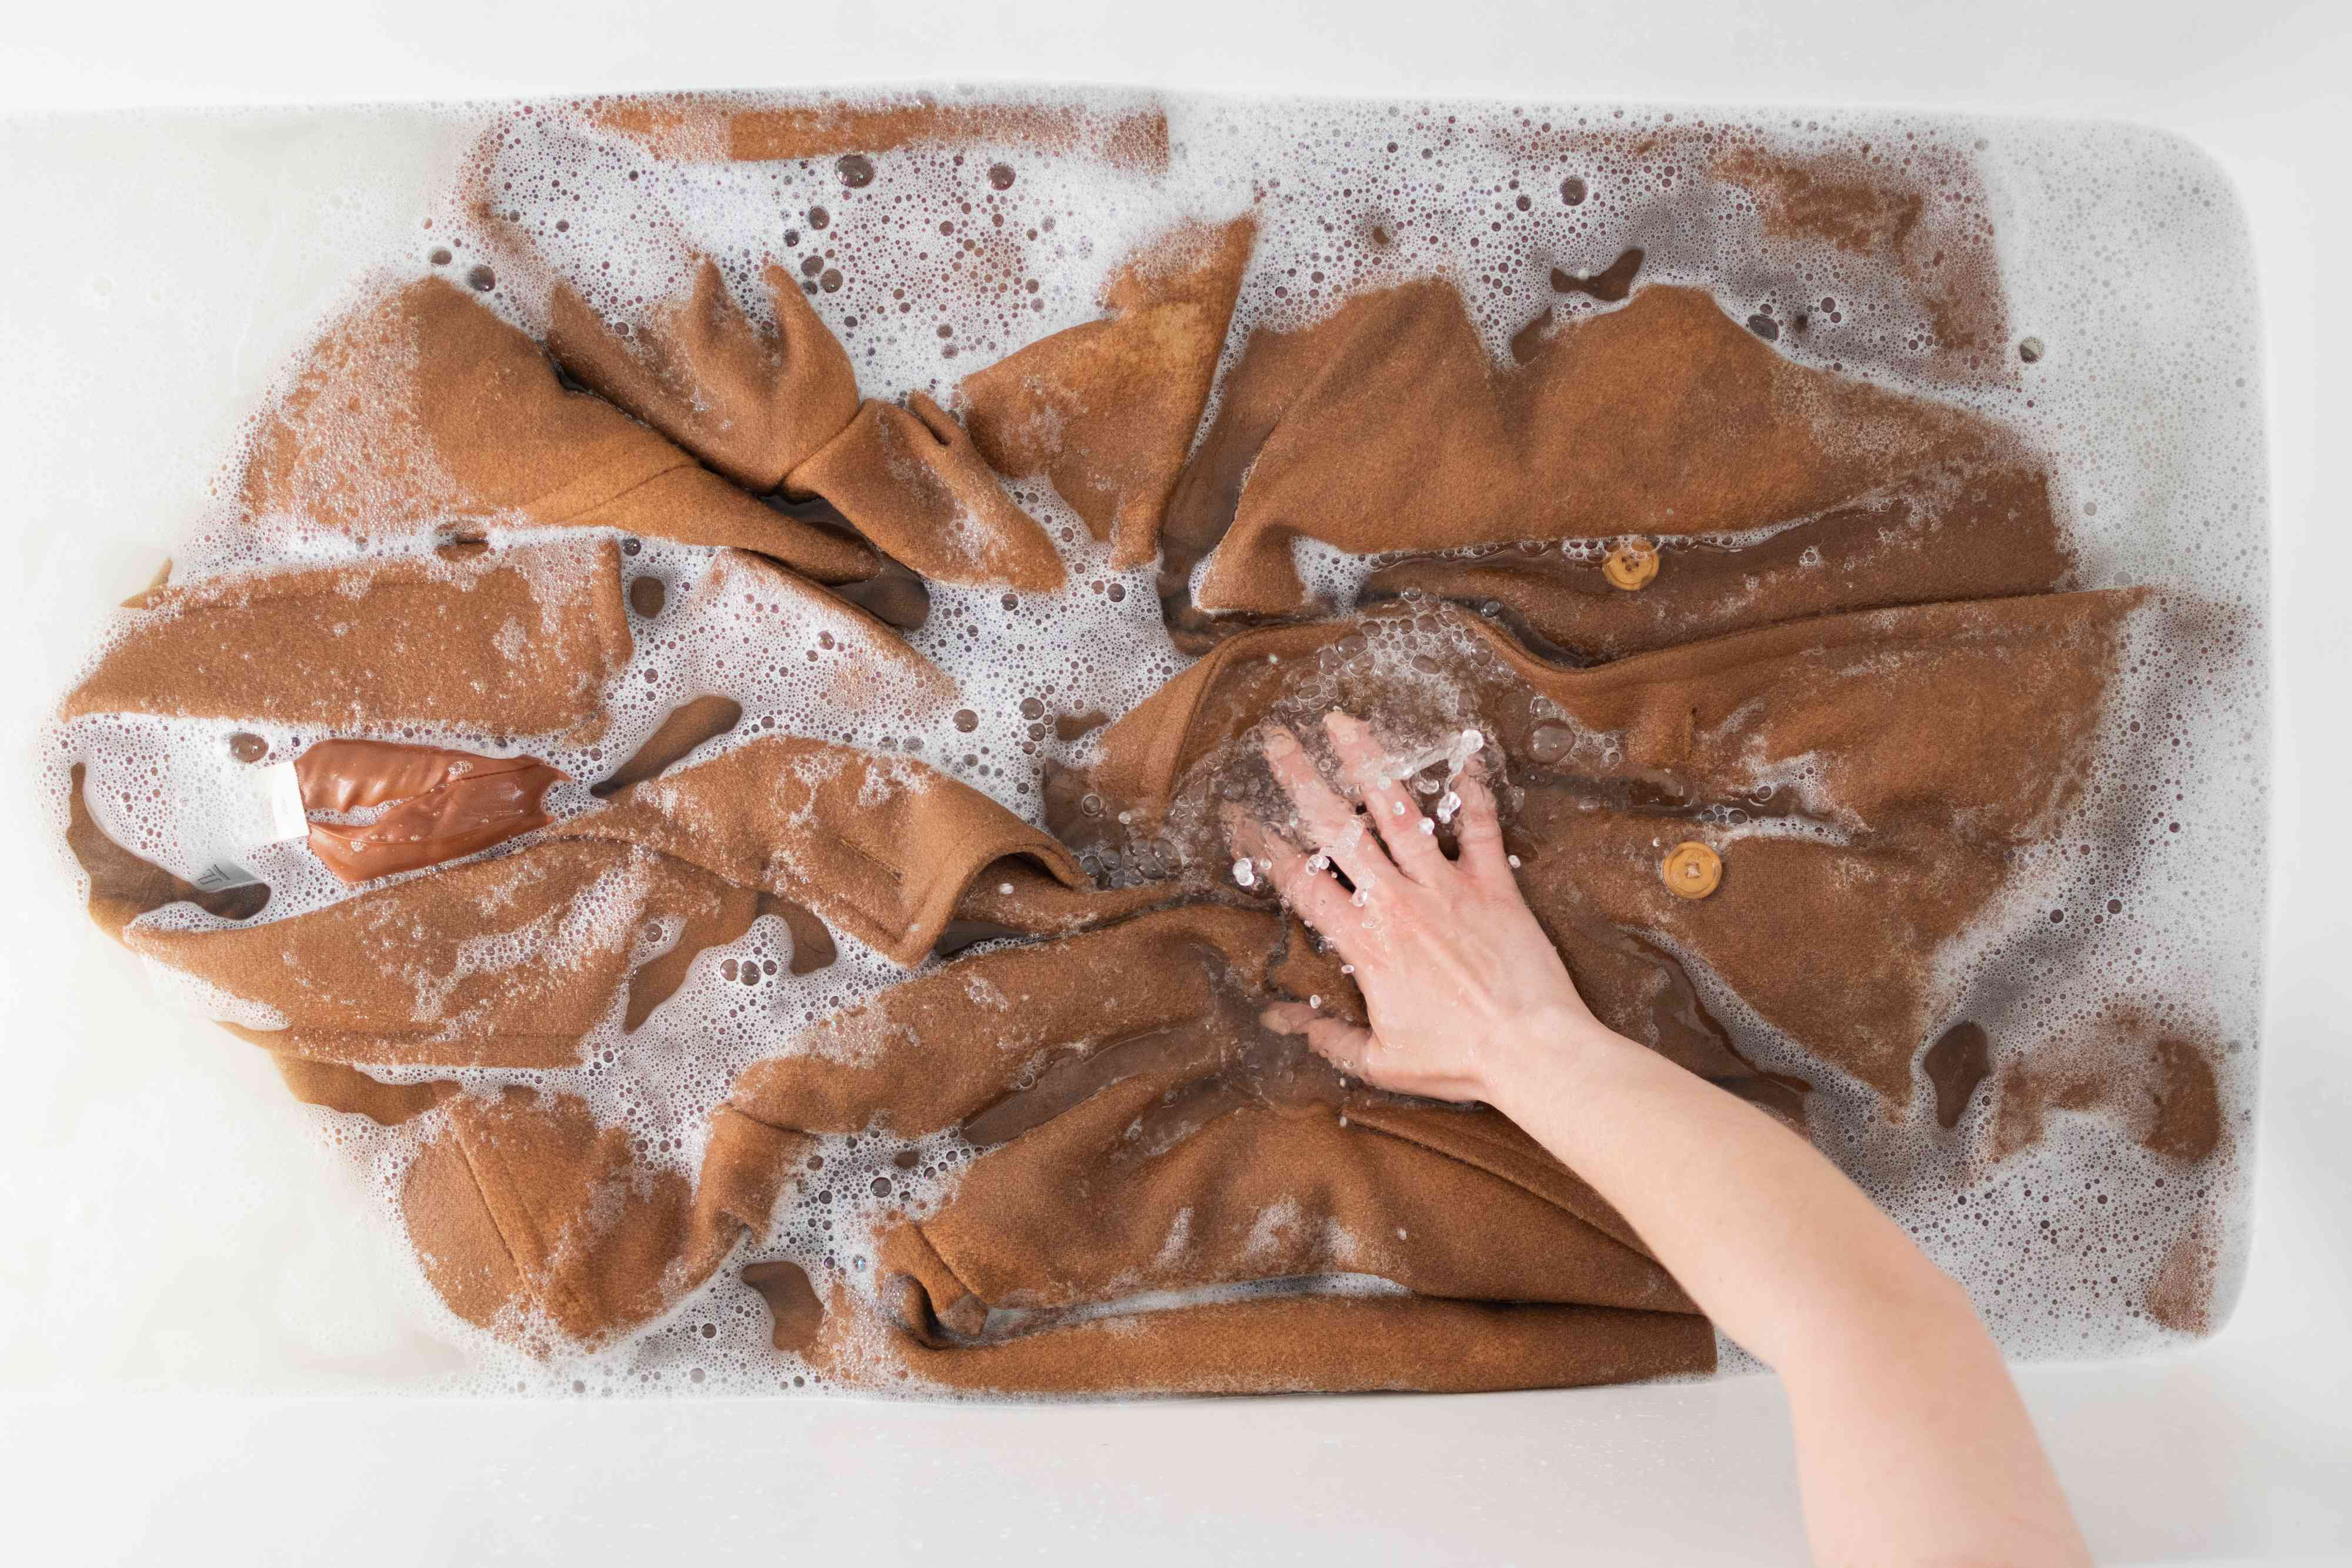 Tan wool coat agitated by hand in tub of water and wool wash solution